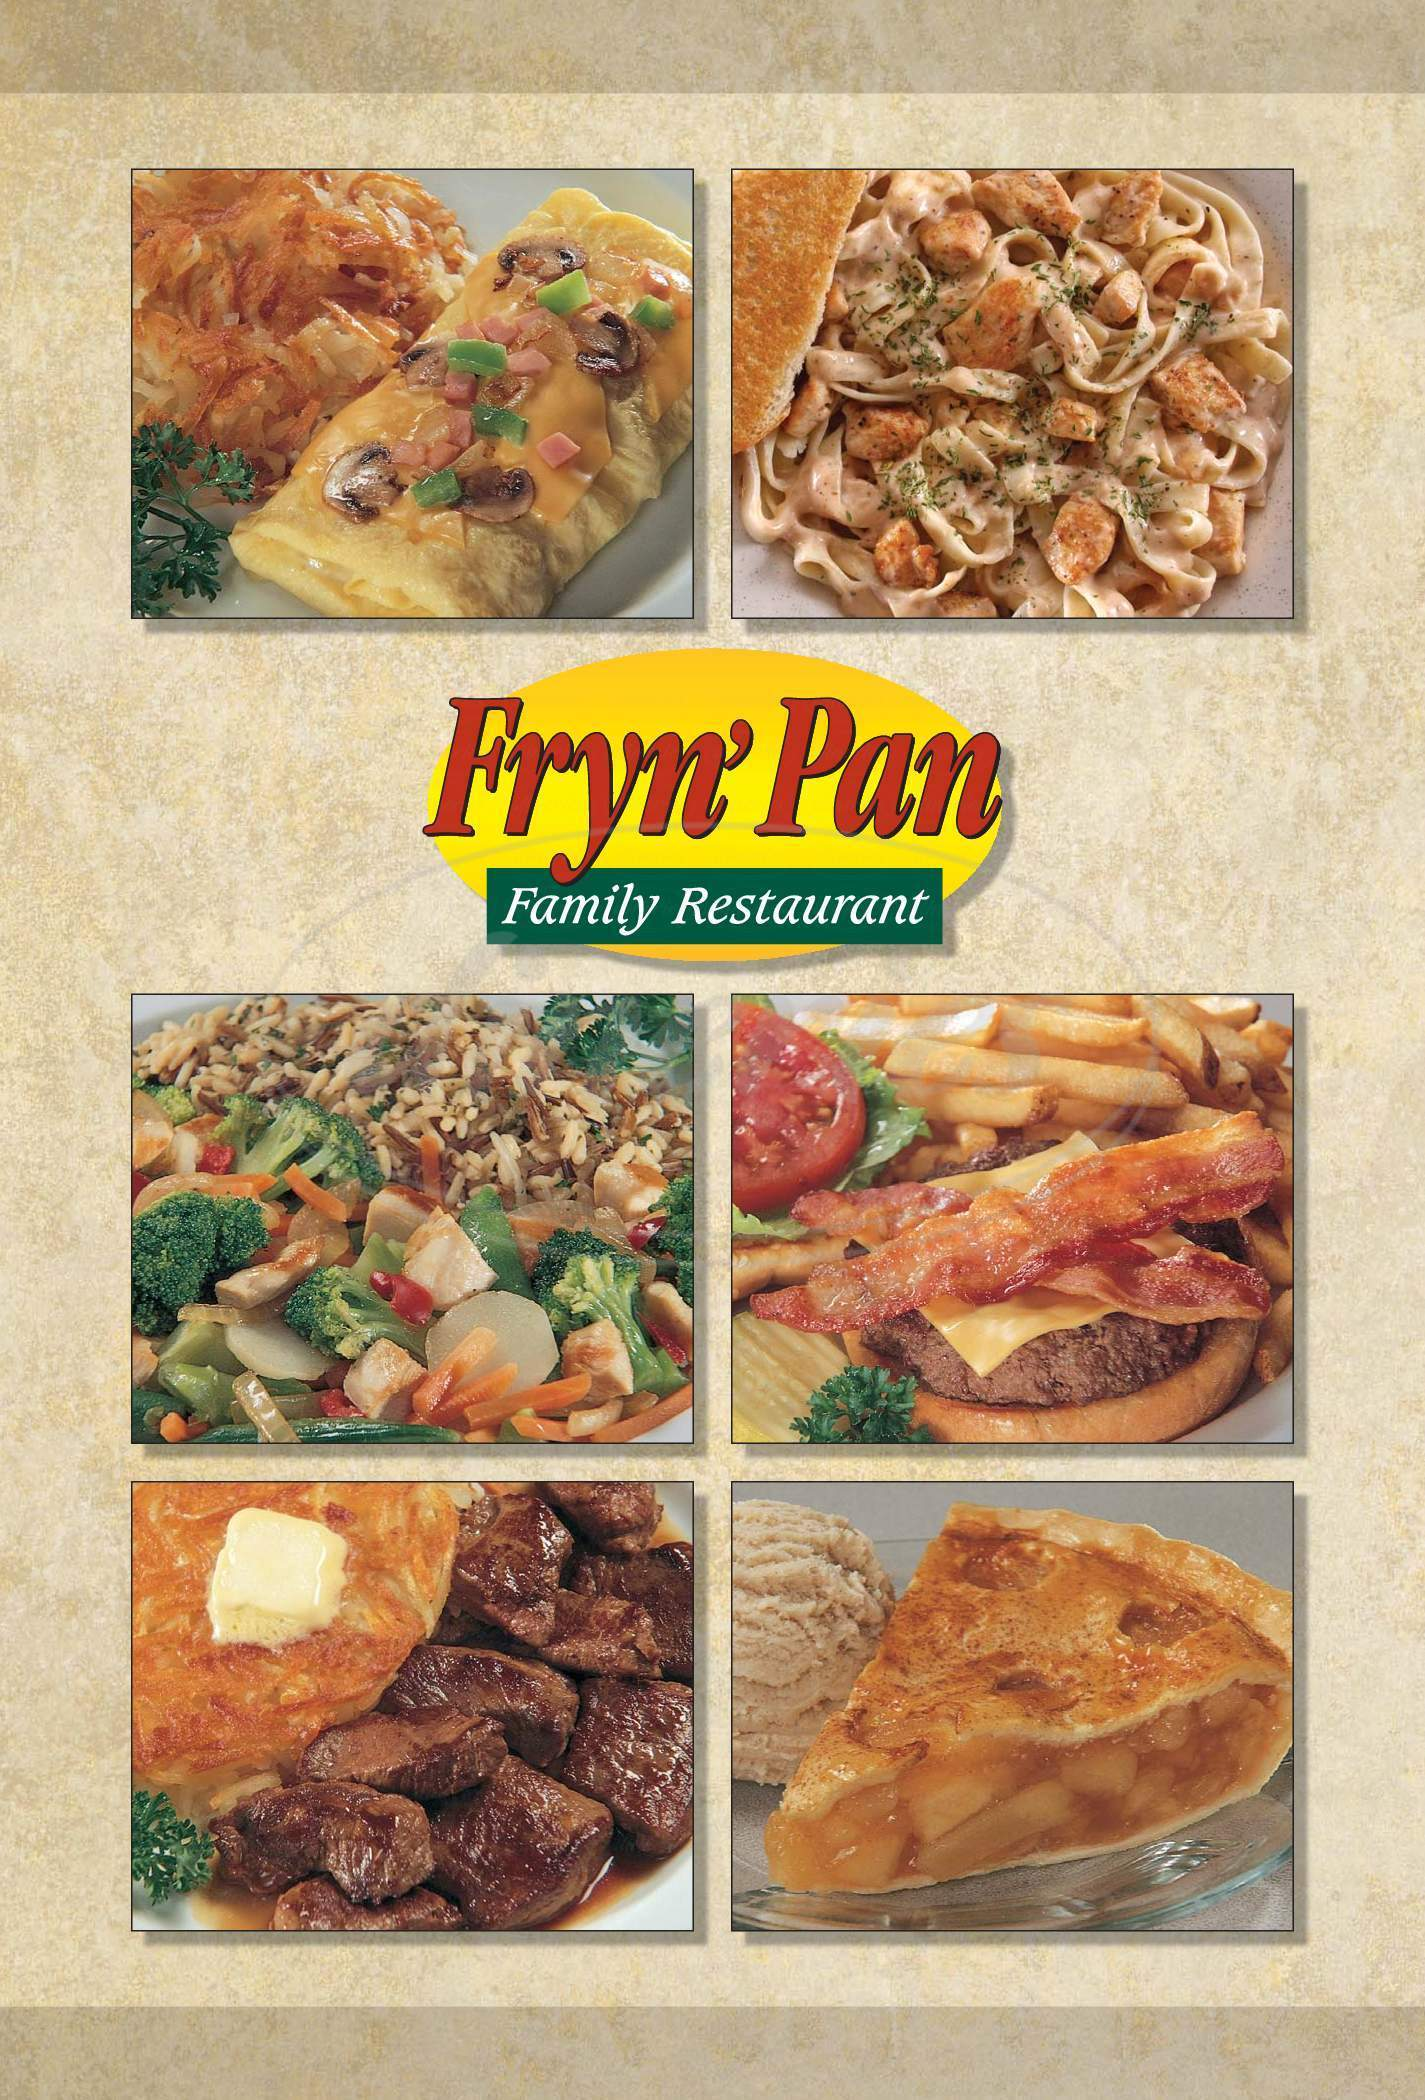 menu for Fryn' Pan